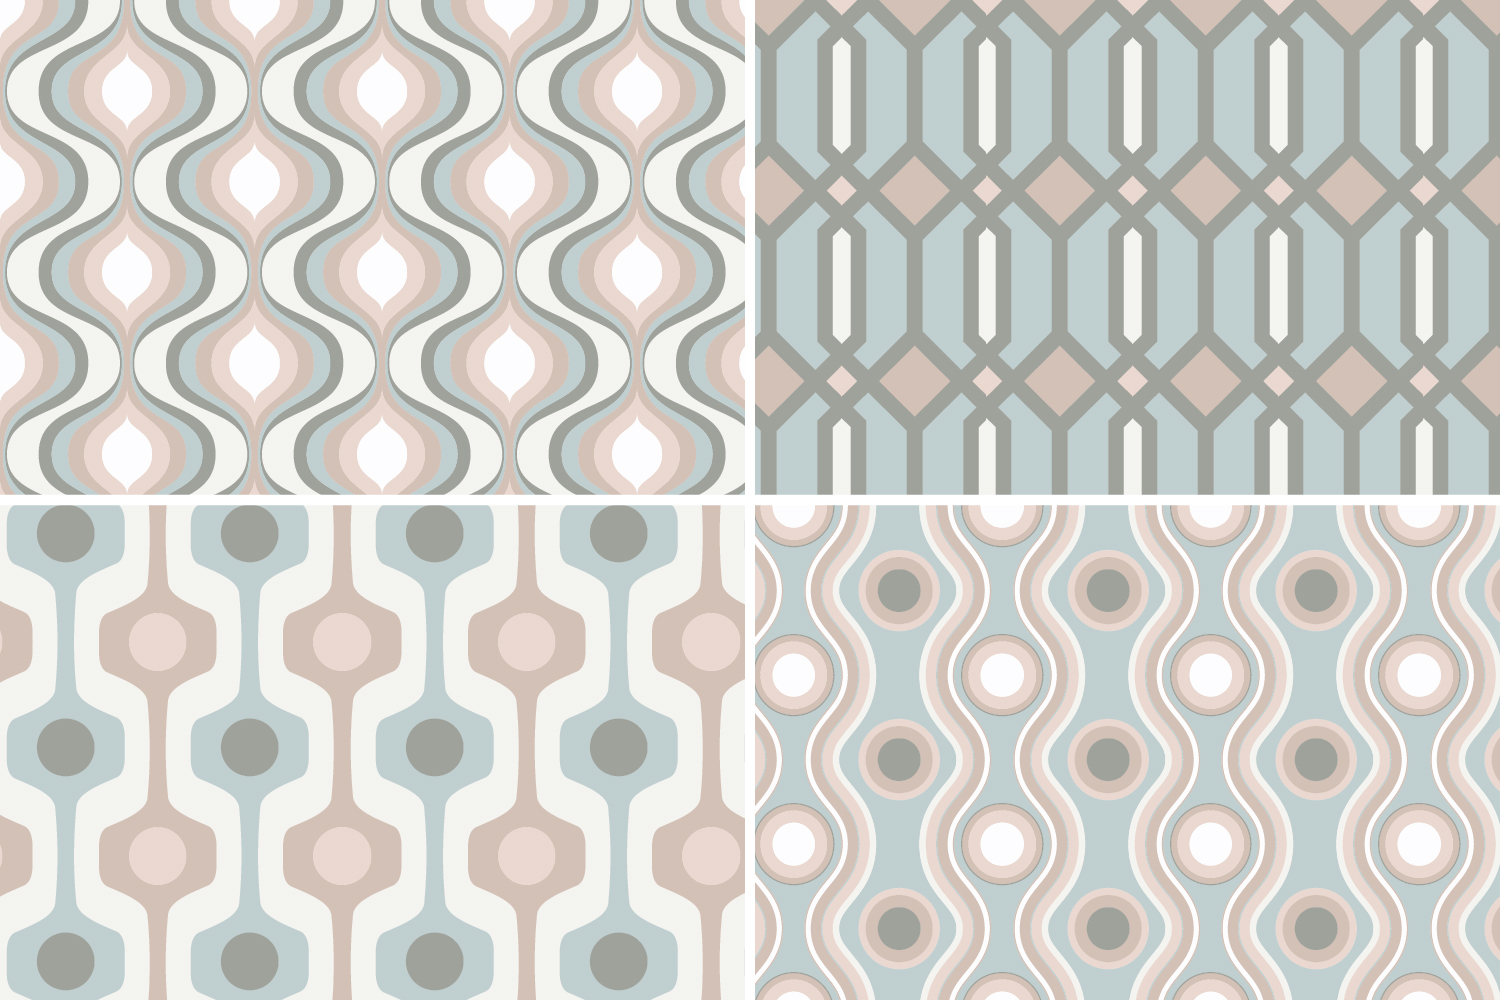 8 Seamless Retro Modern Patterns - Pink, Ivory & Green example image 6